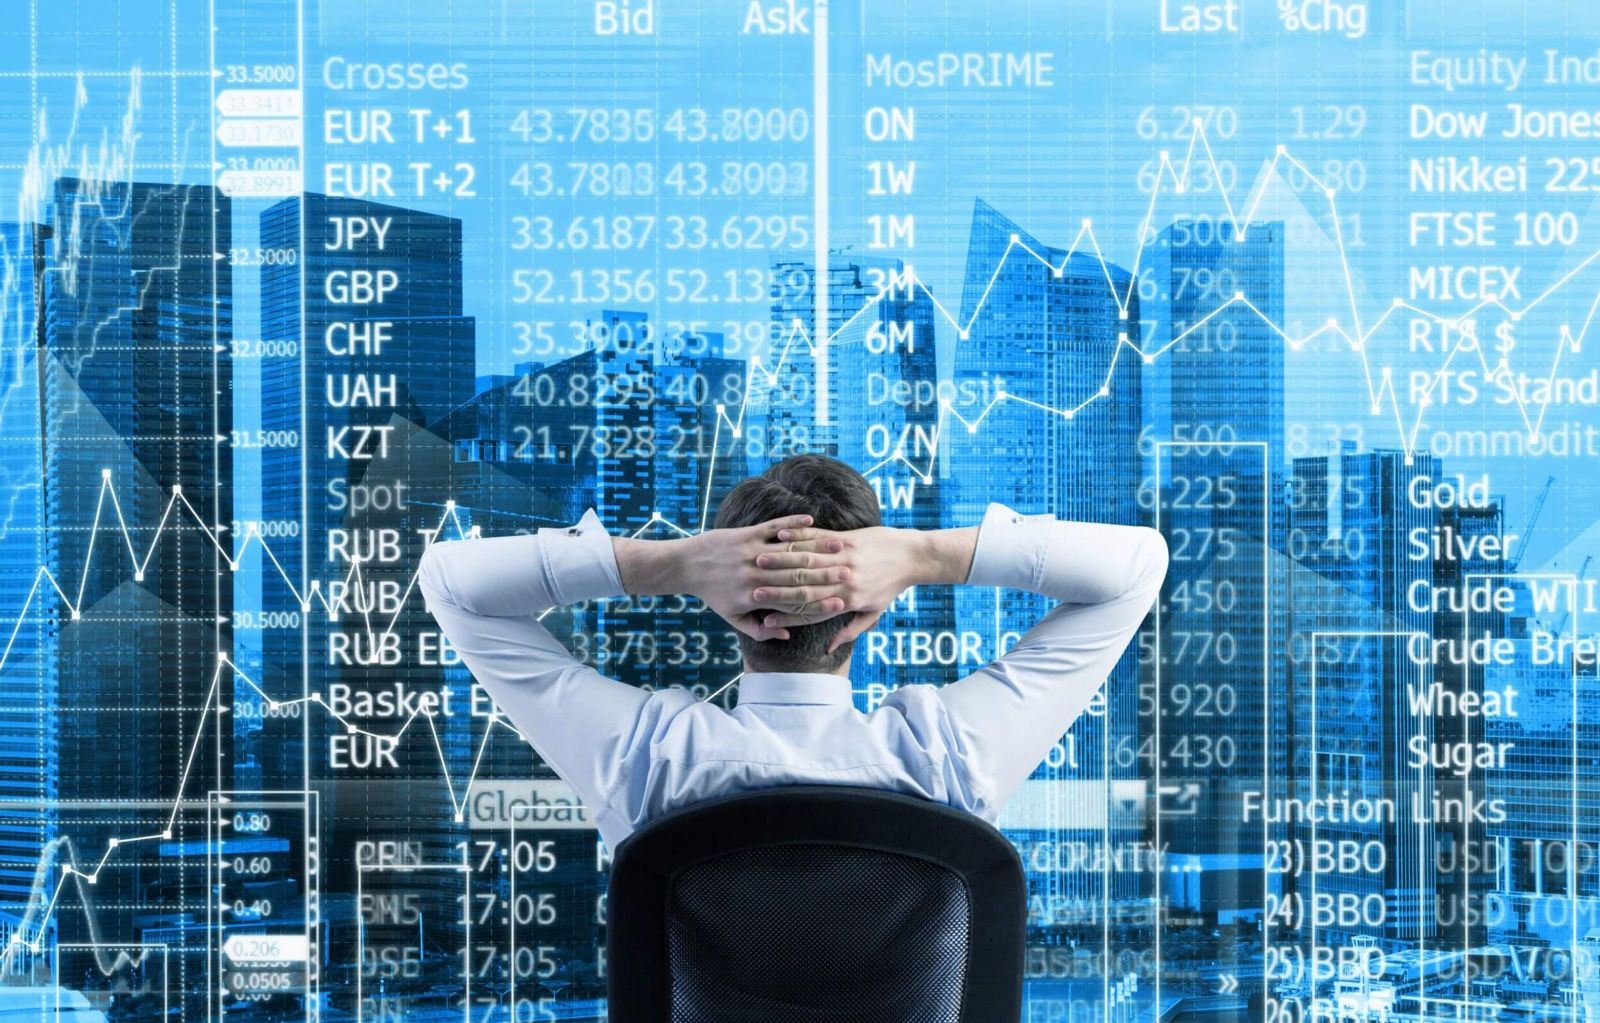 Stockbrokers Neglect Claims